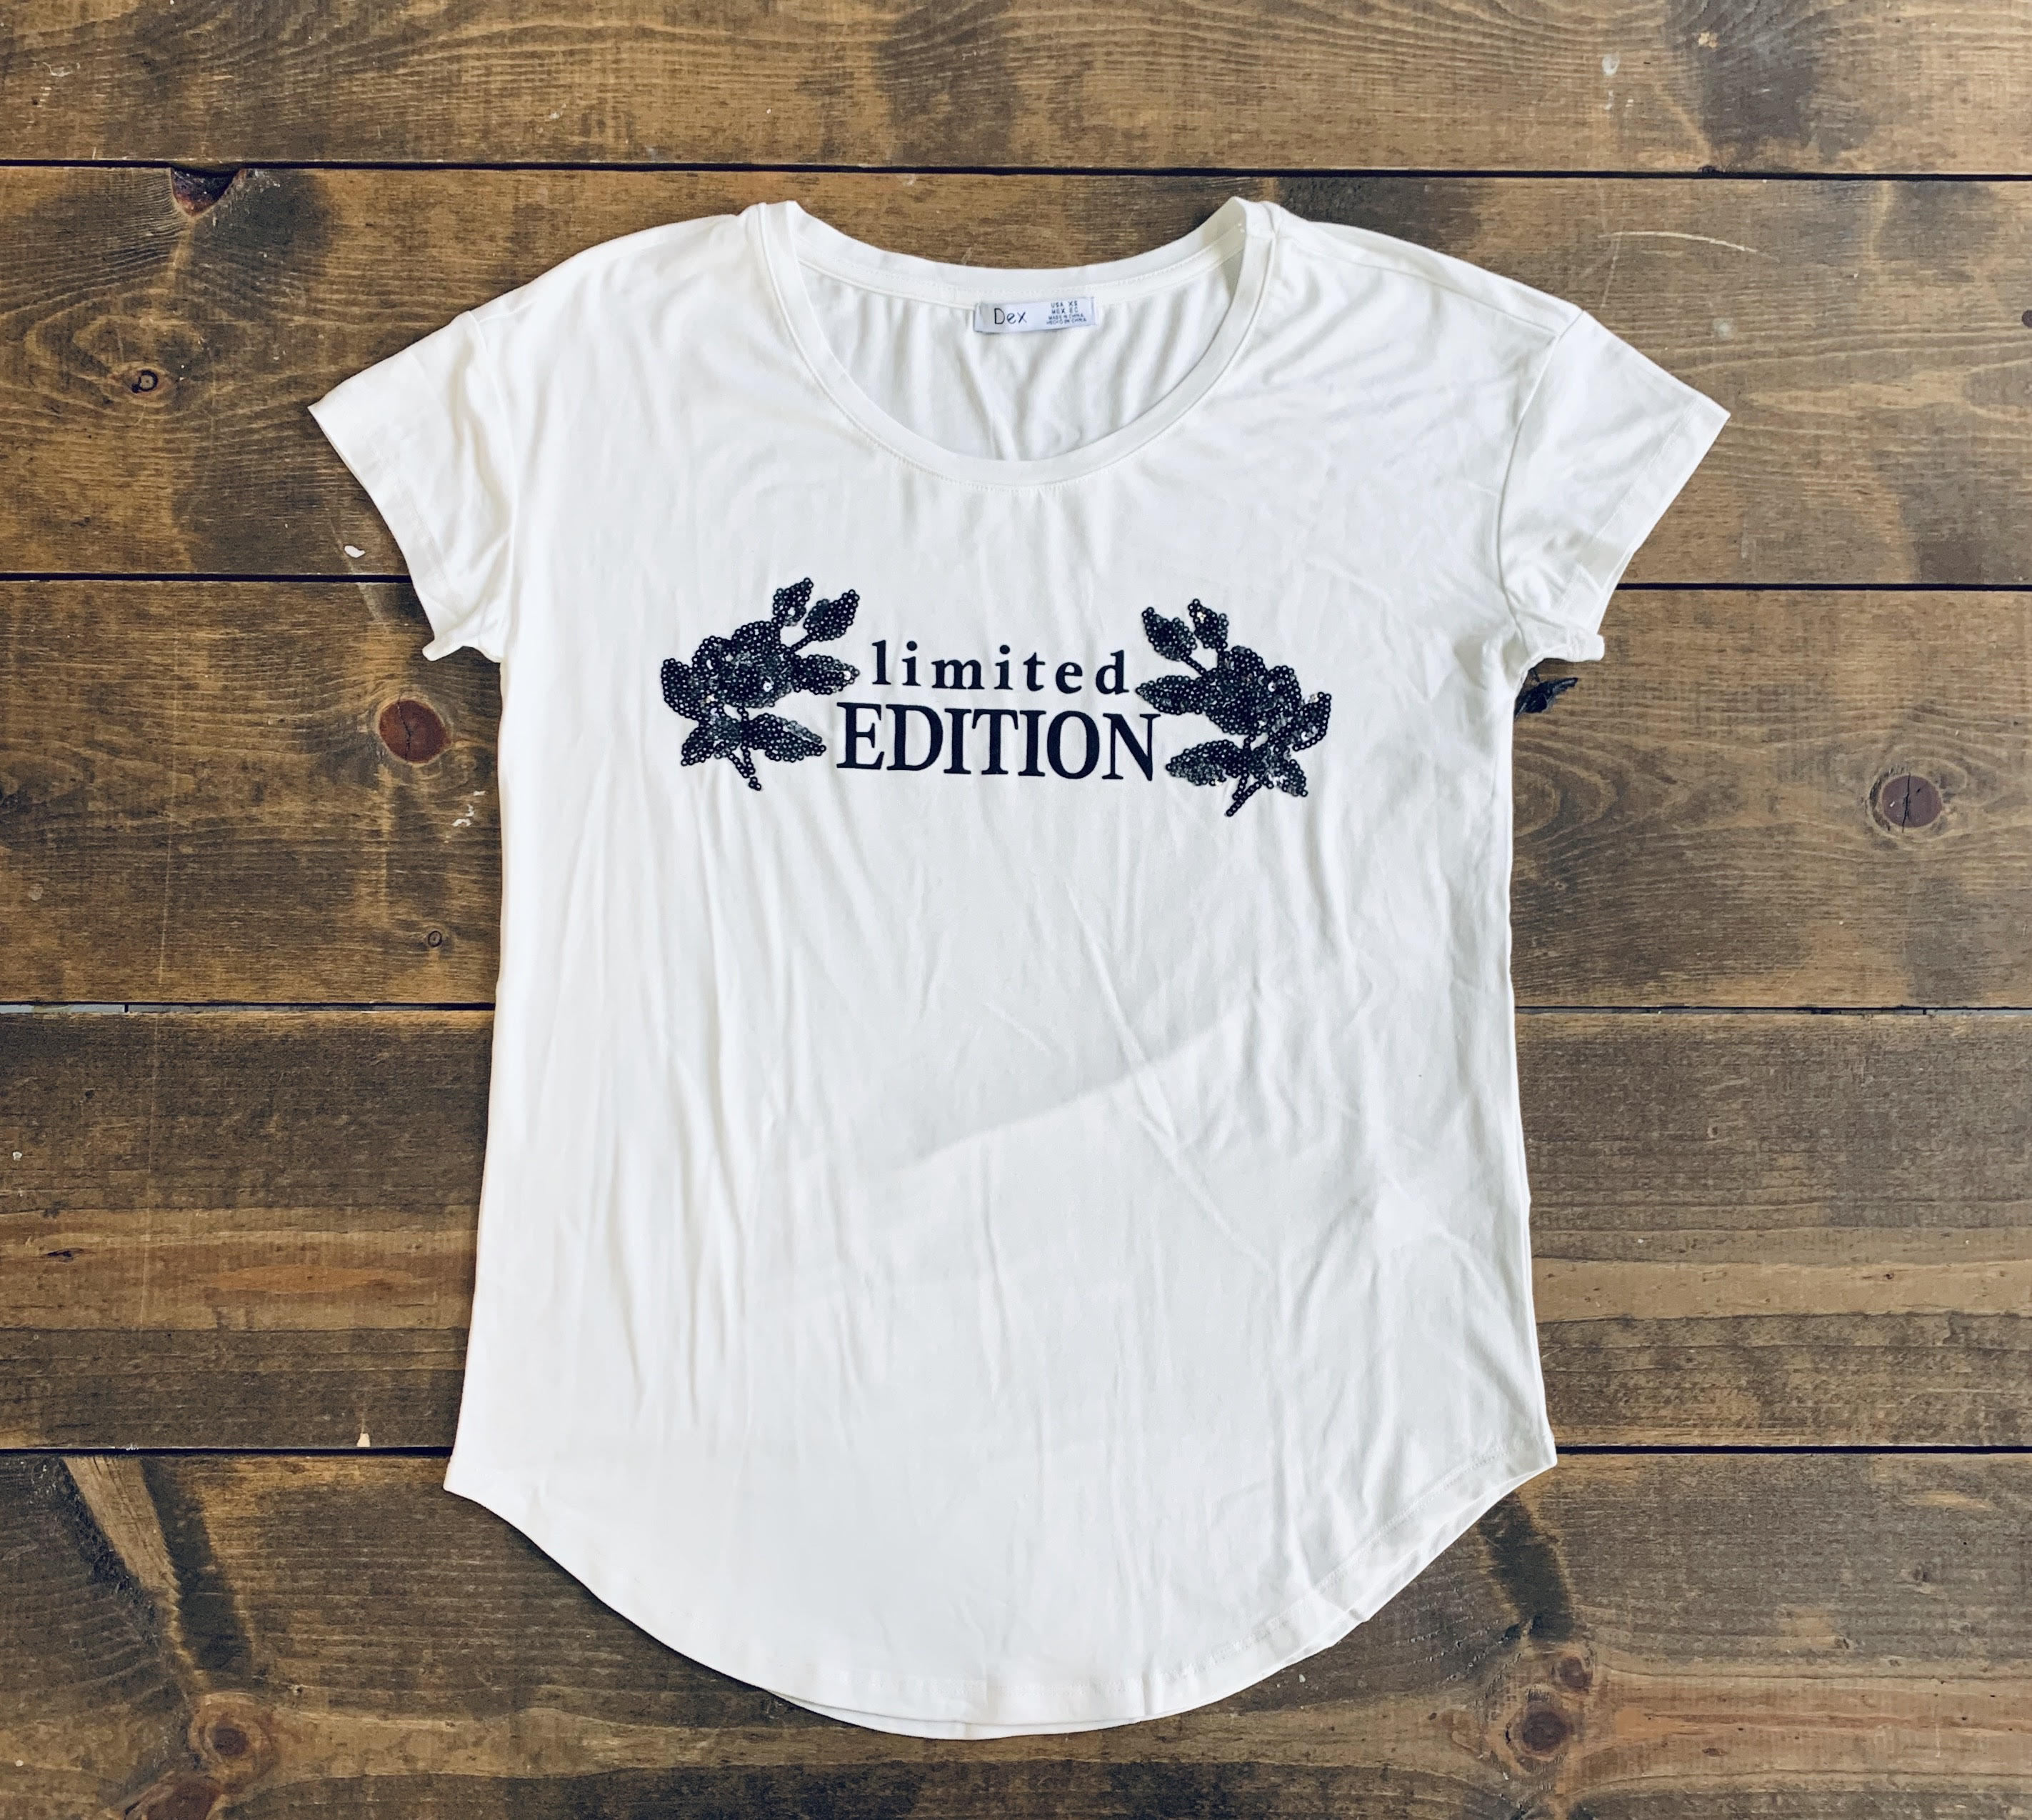 White Limited Edition Graphic Tee Shirt